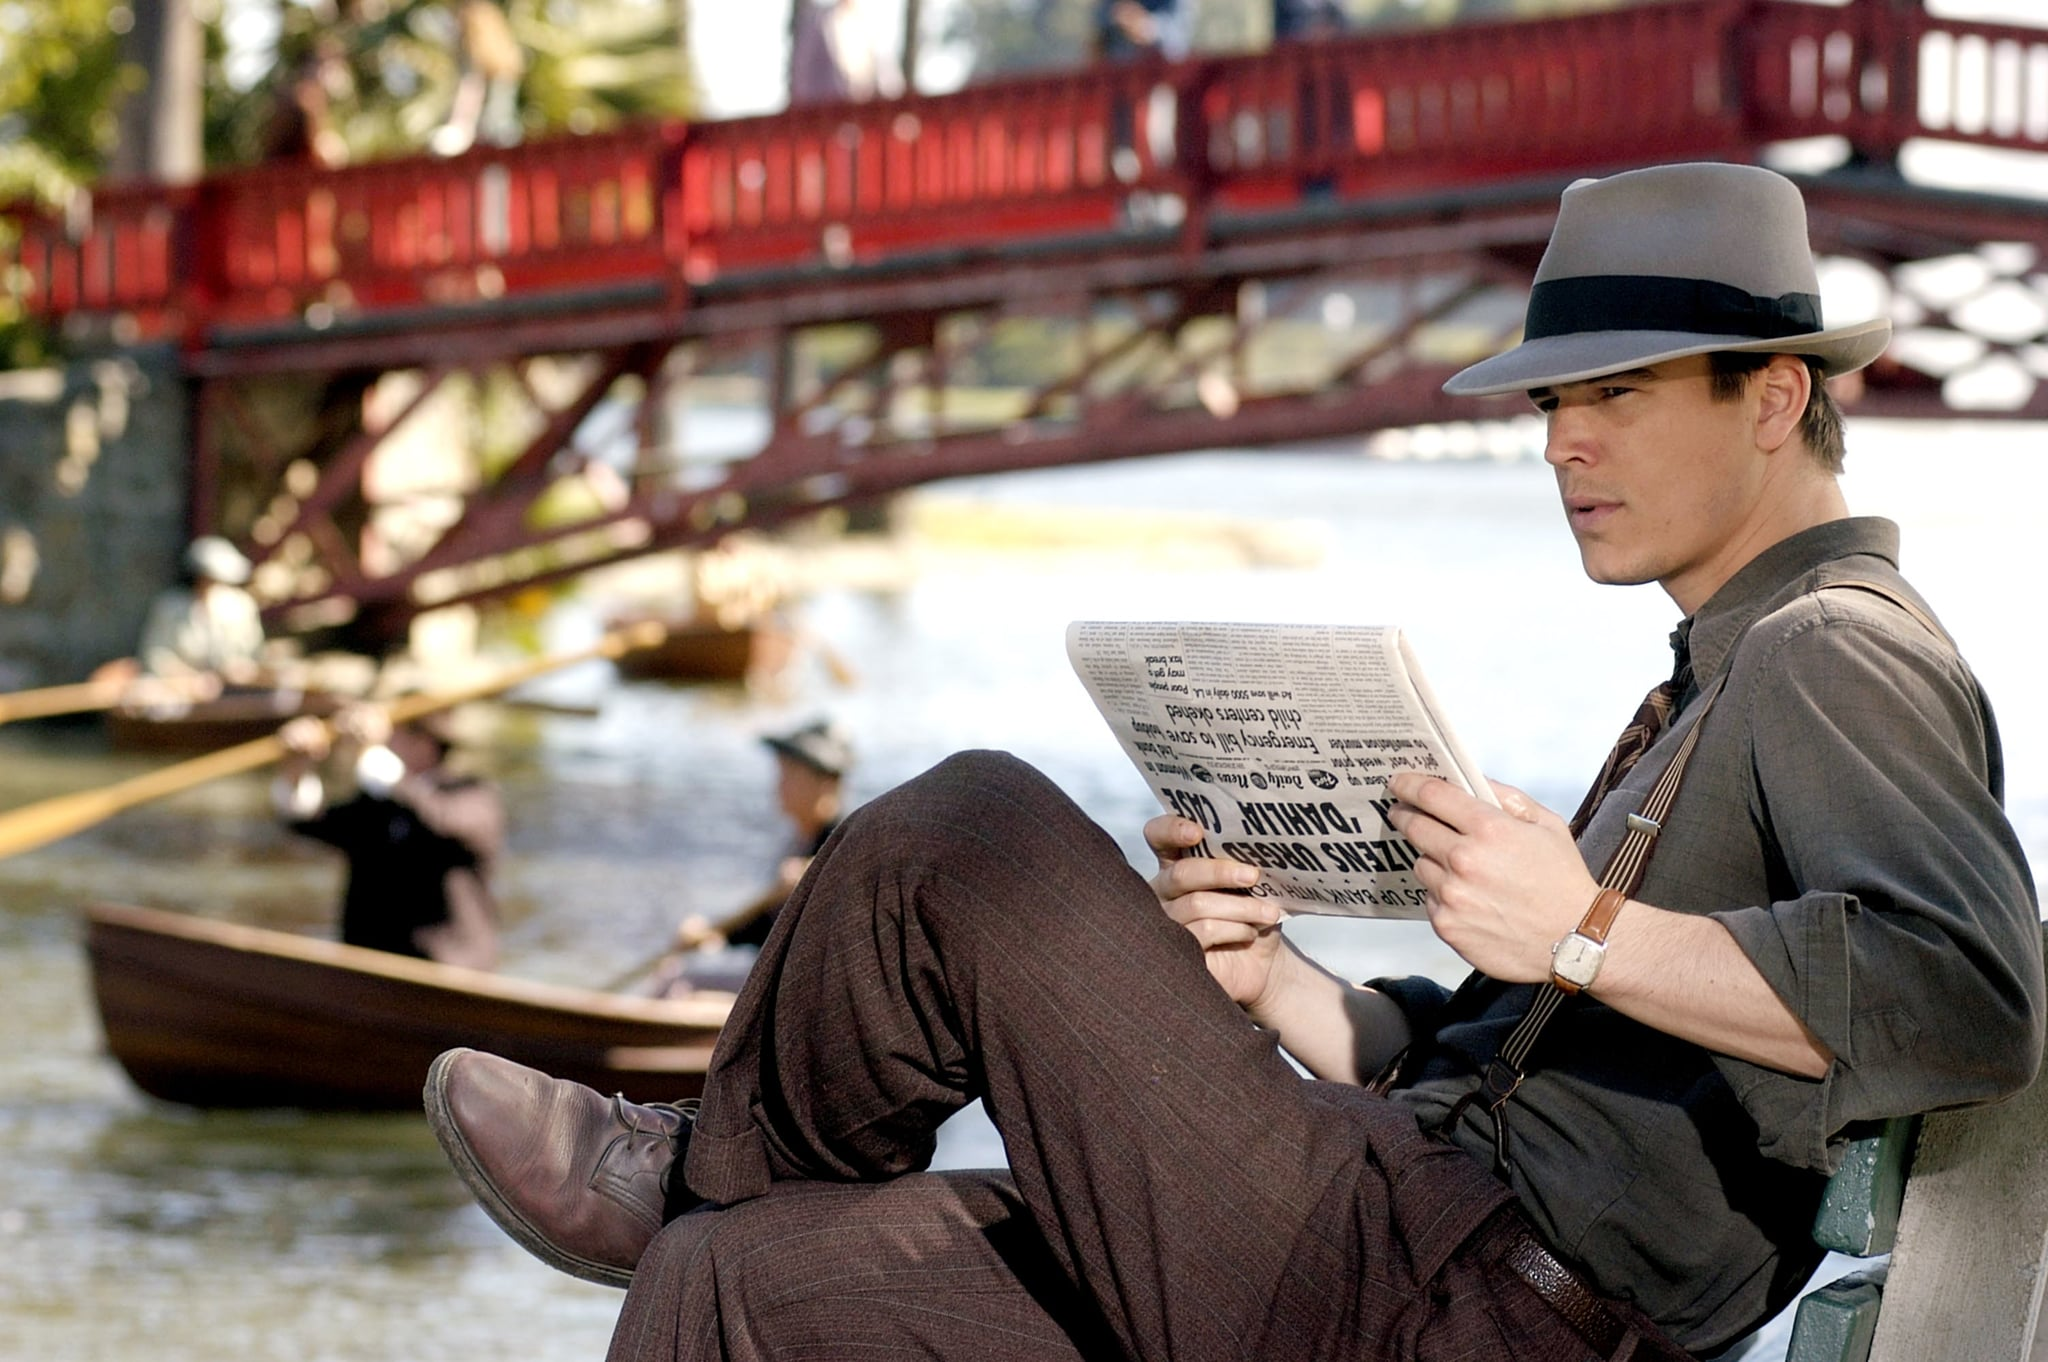 Check Him Out in '40s Clothing! Hot